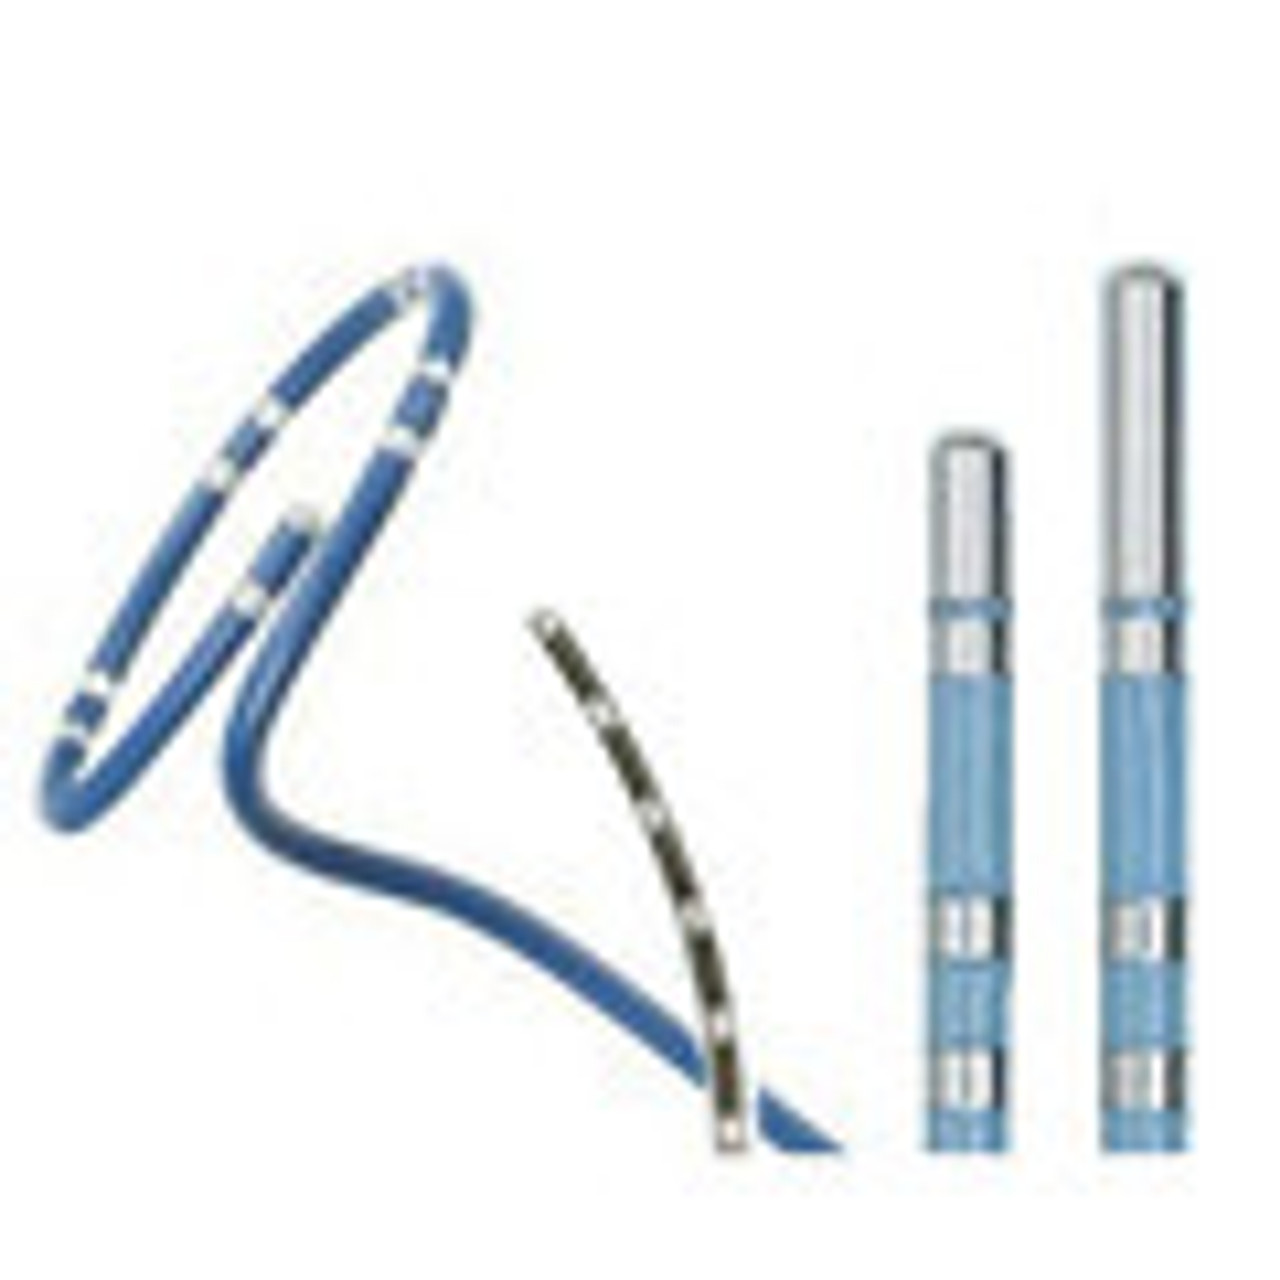 Electrophysiology (EP) Catheters